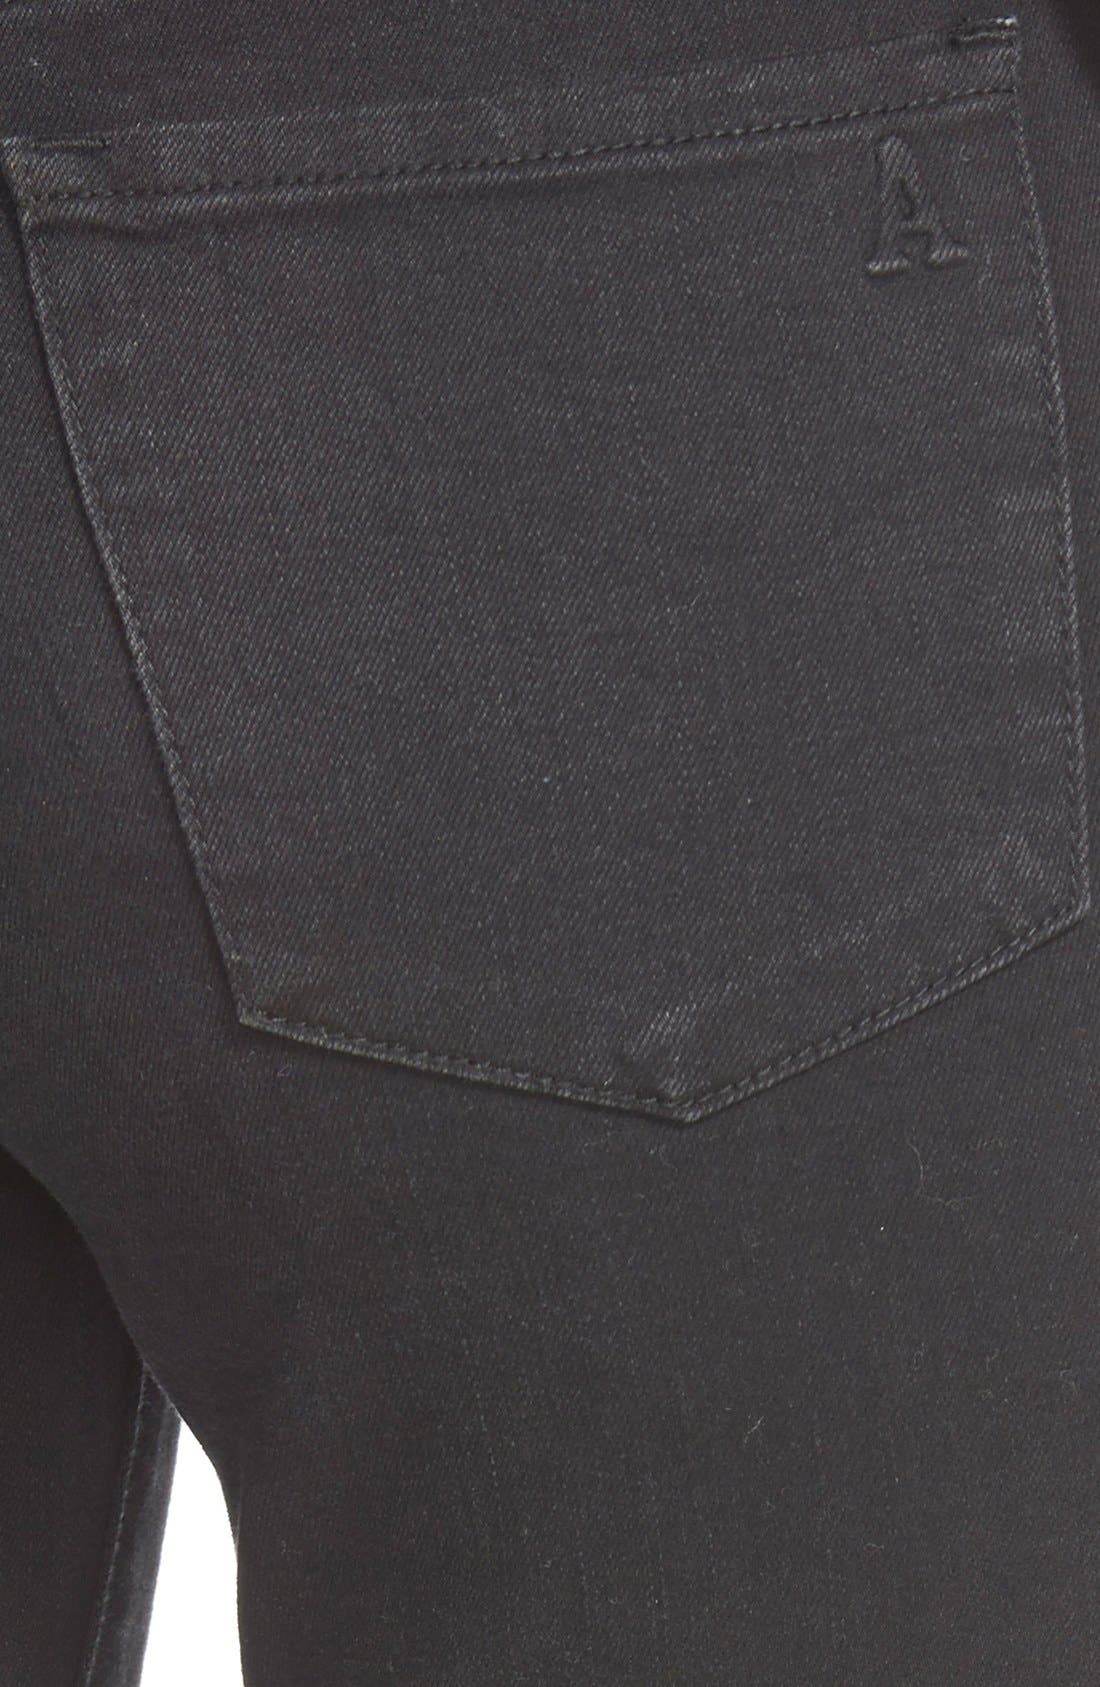 Alternate Image 4  - Articles of Society 'Sarah' Distressed Skinny Jeans (Black Cat)